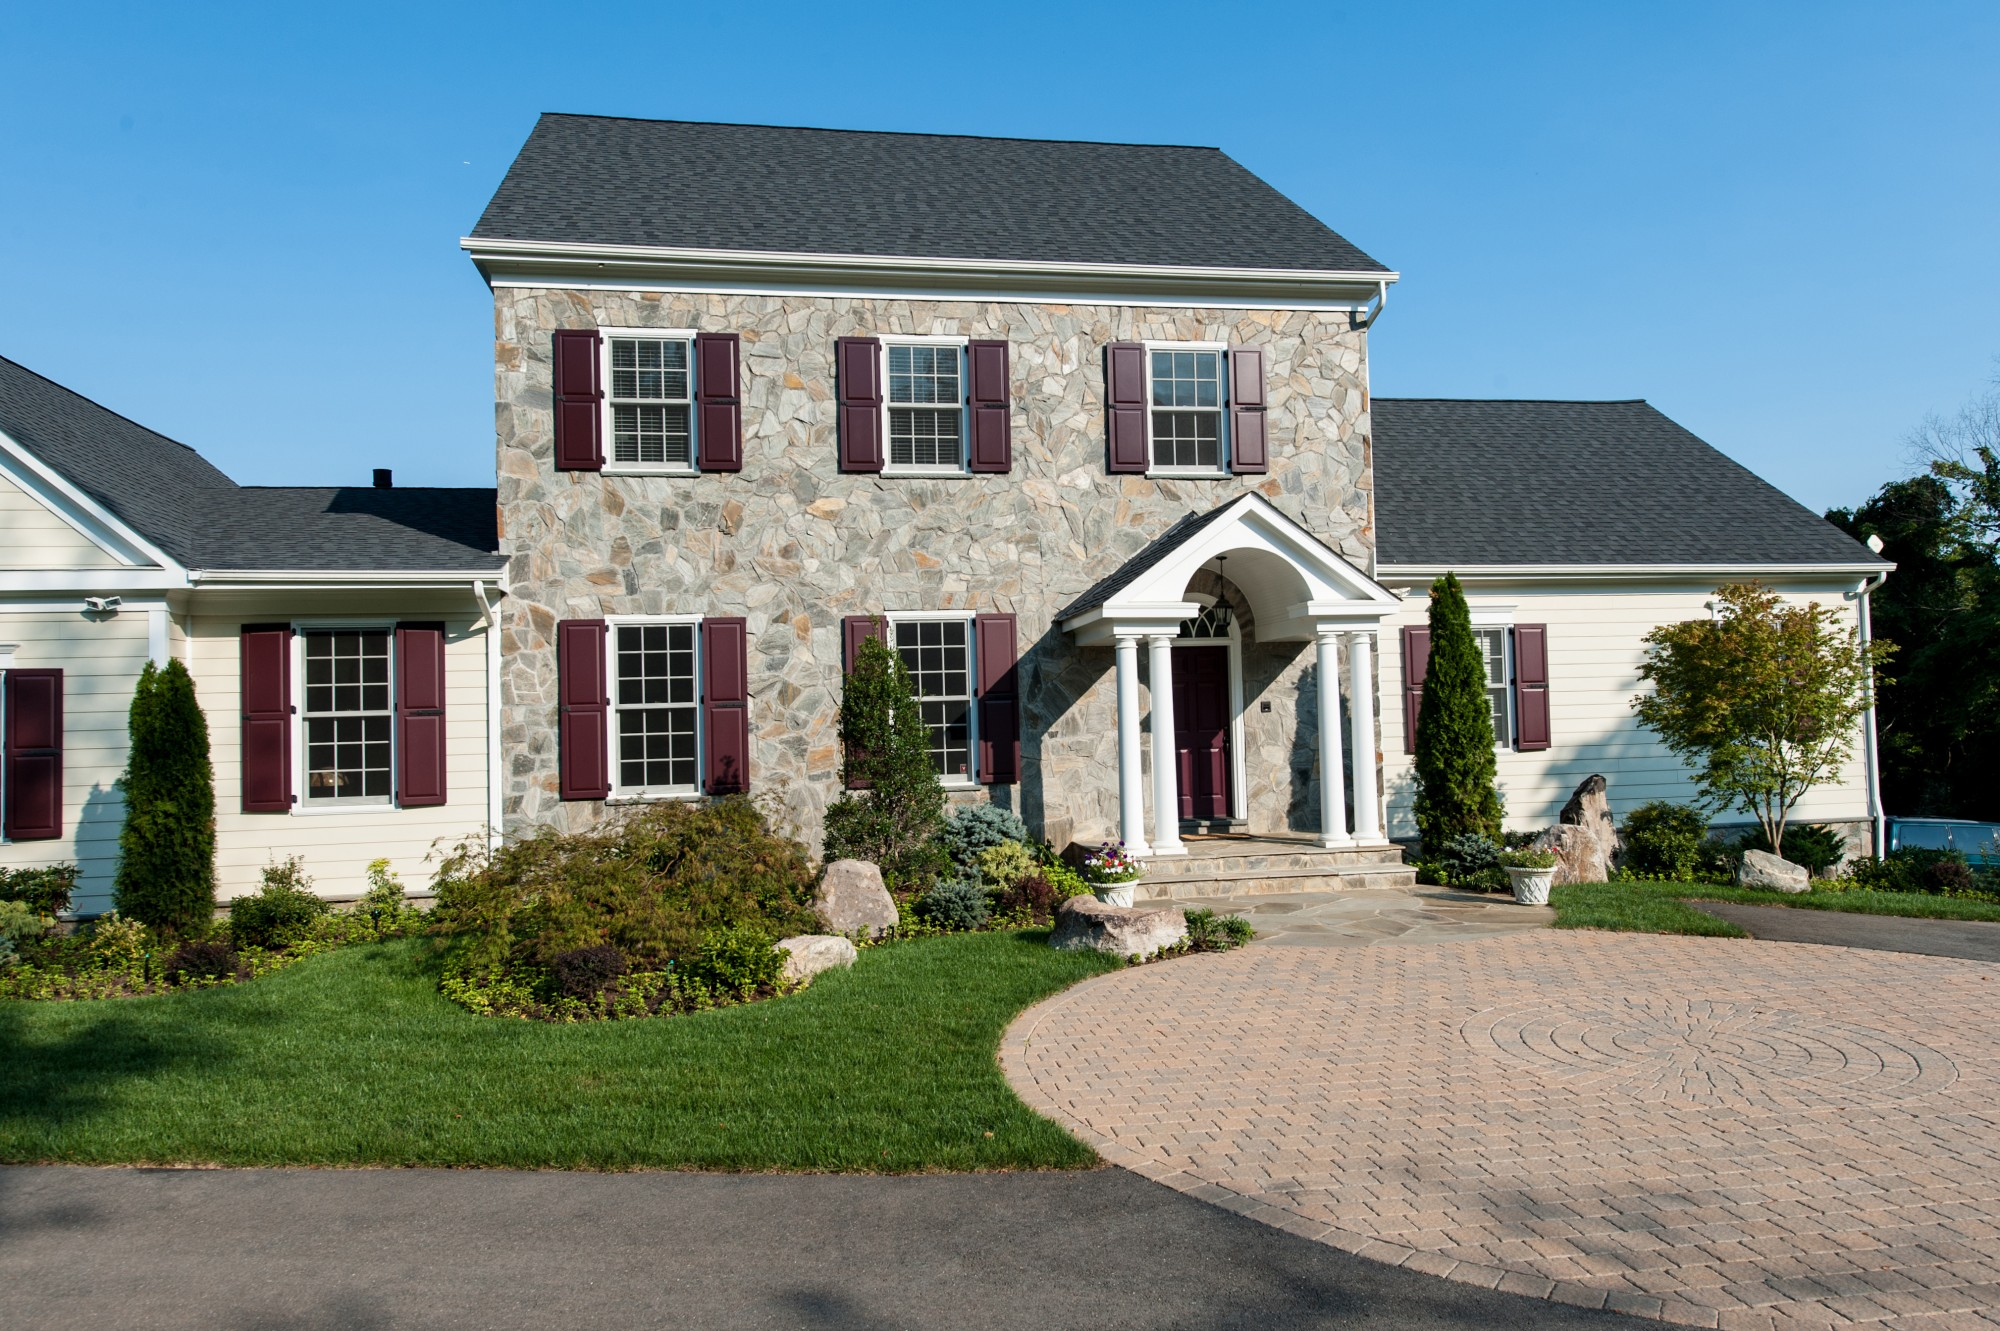 stone front, functional shutters, brick drive